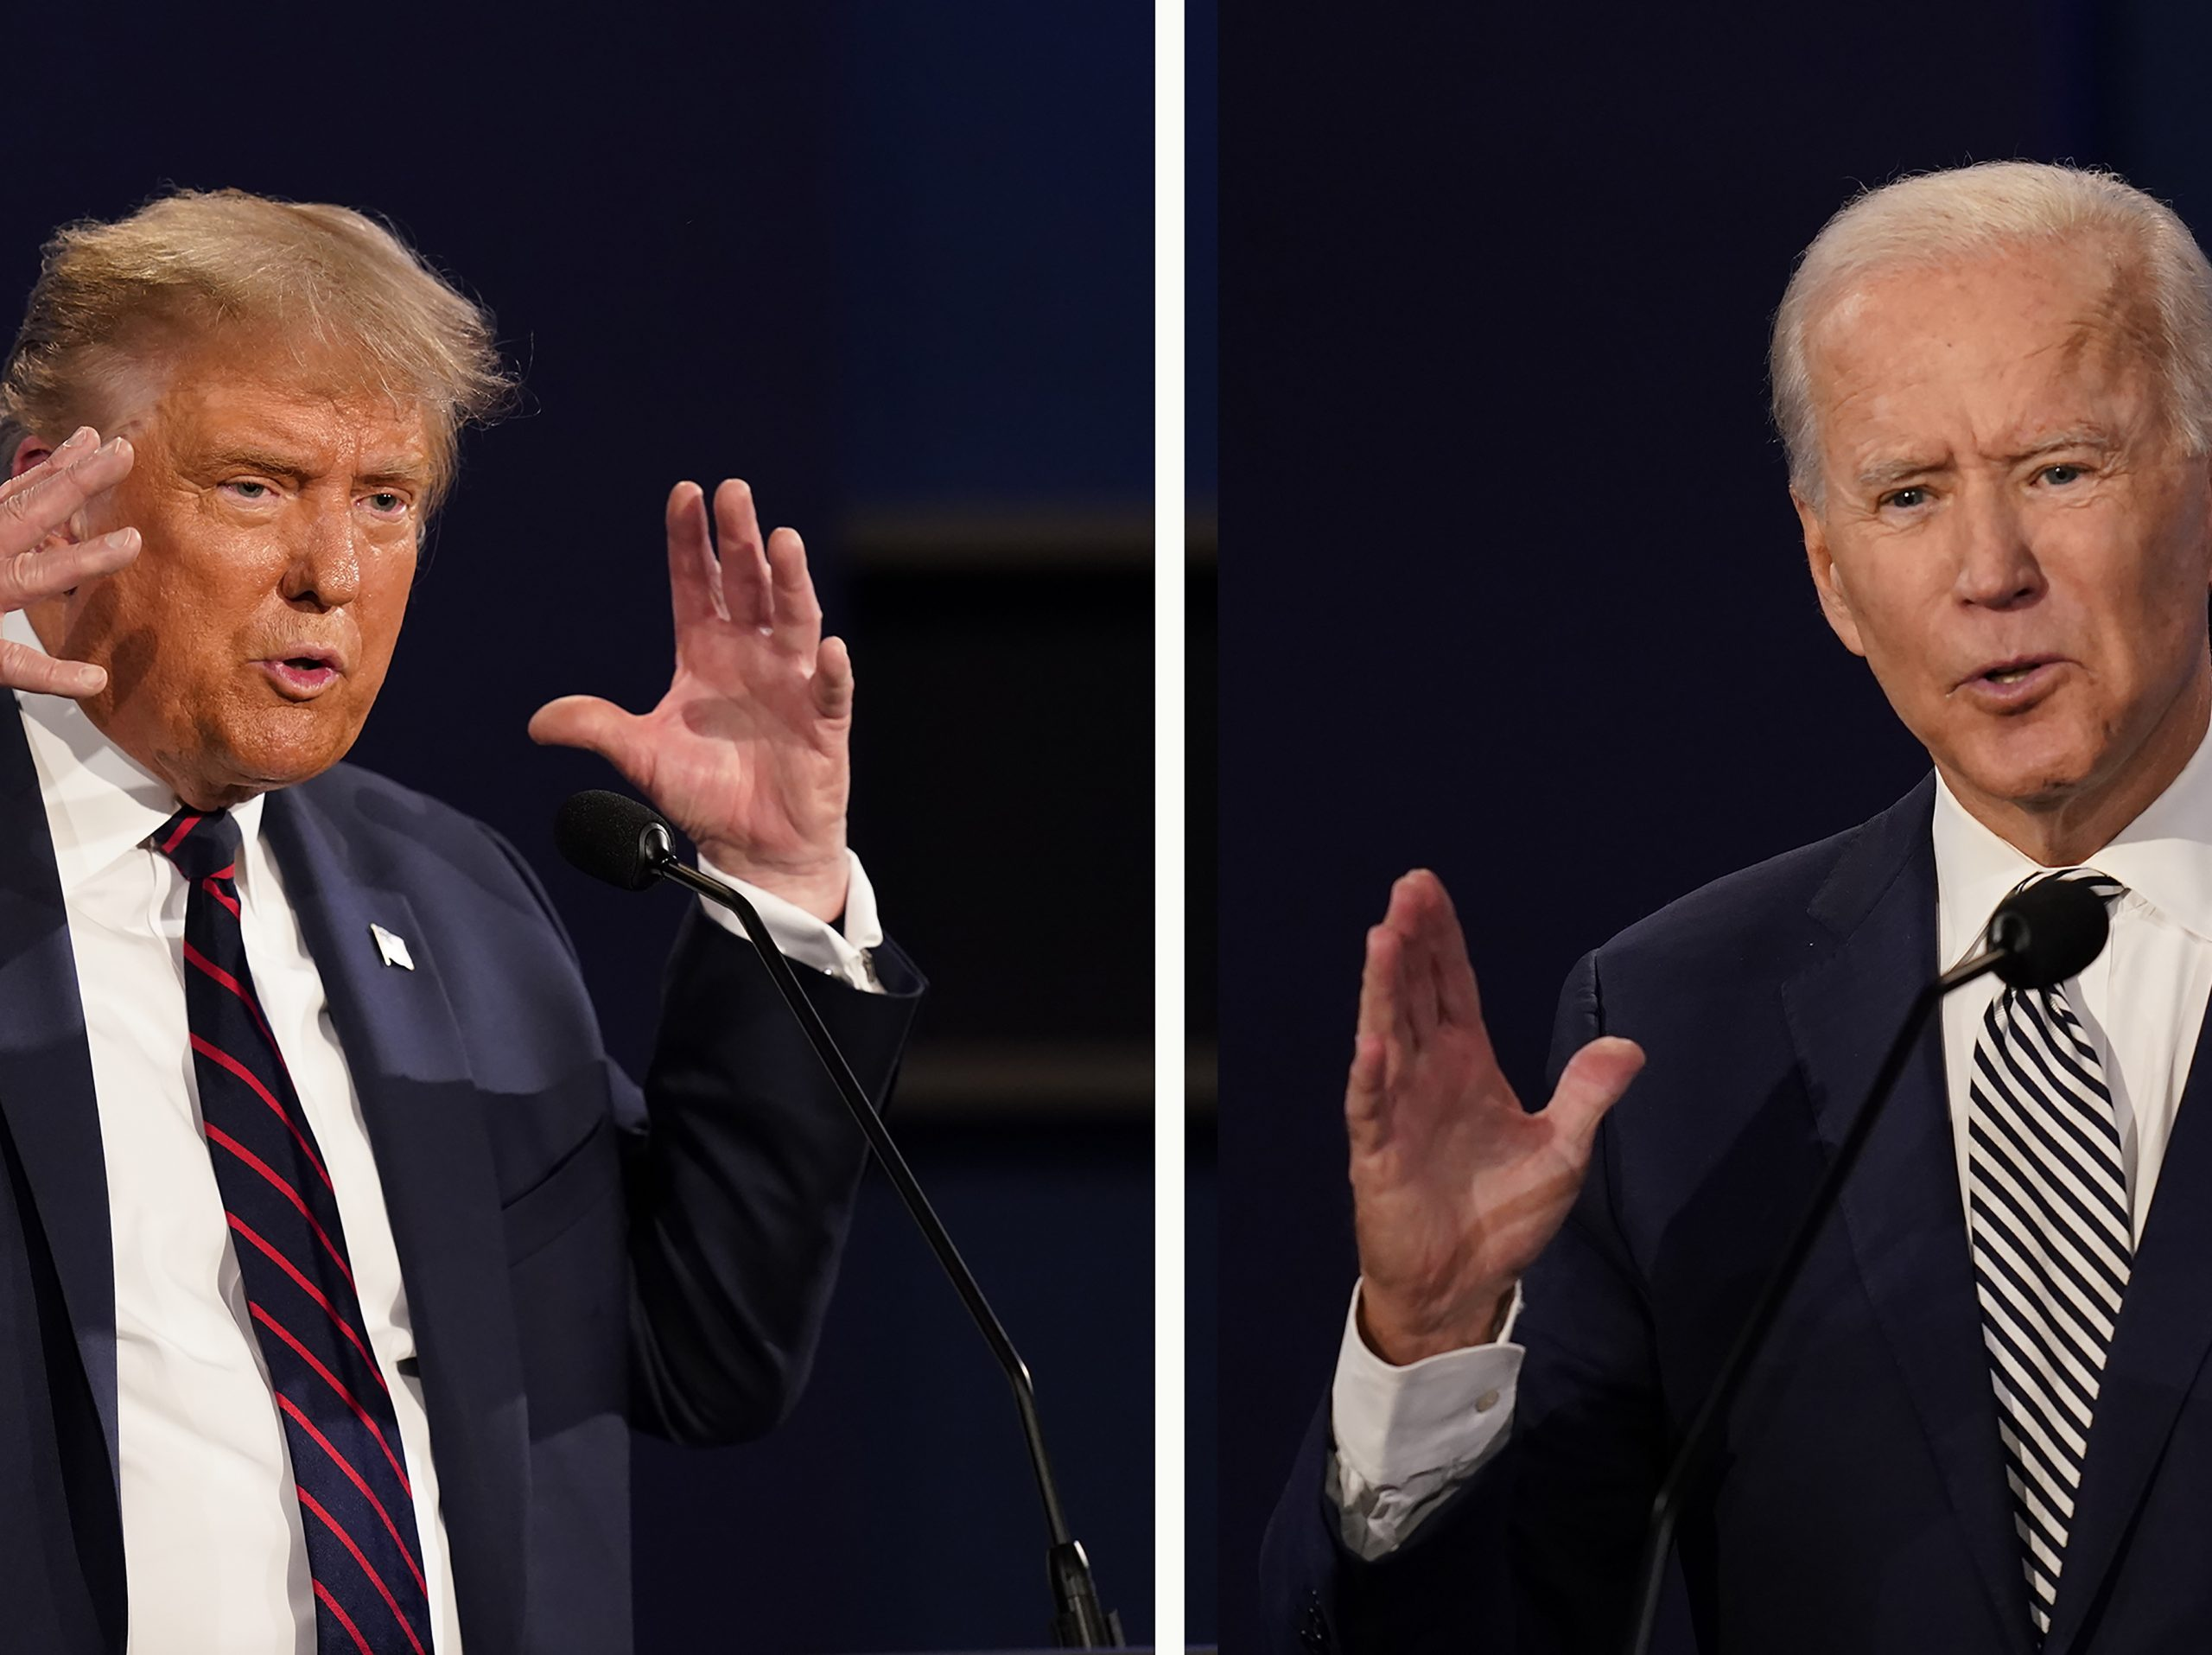 Trump says he won't participate in next debate after it goes virtual due to COVID-19